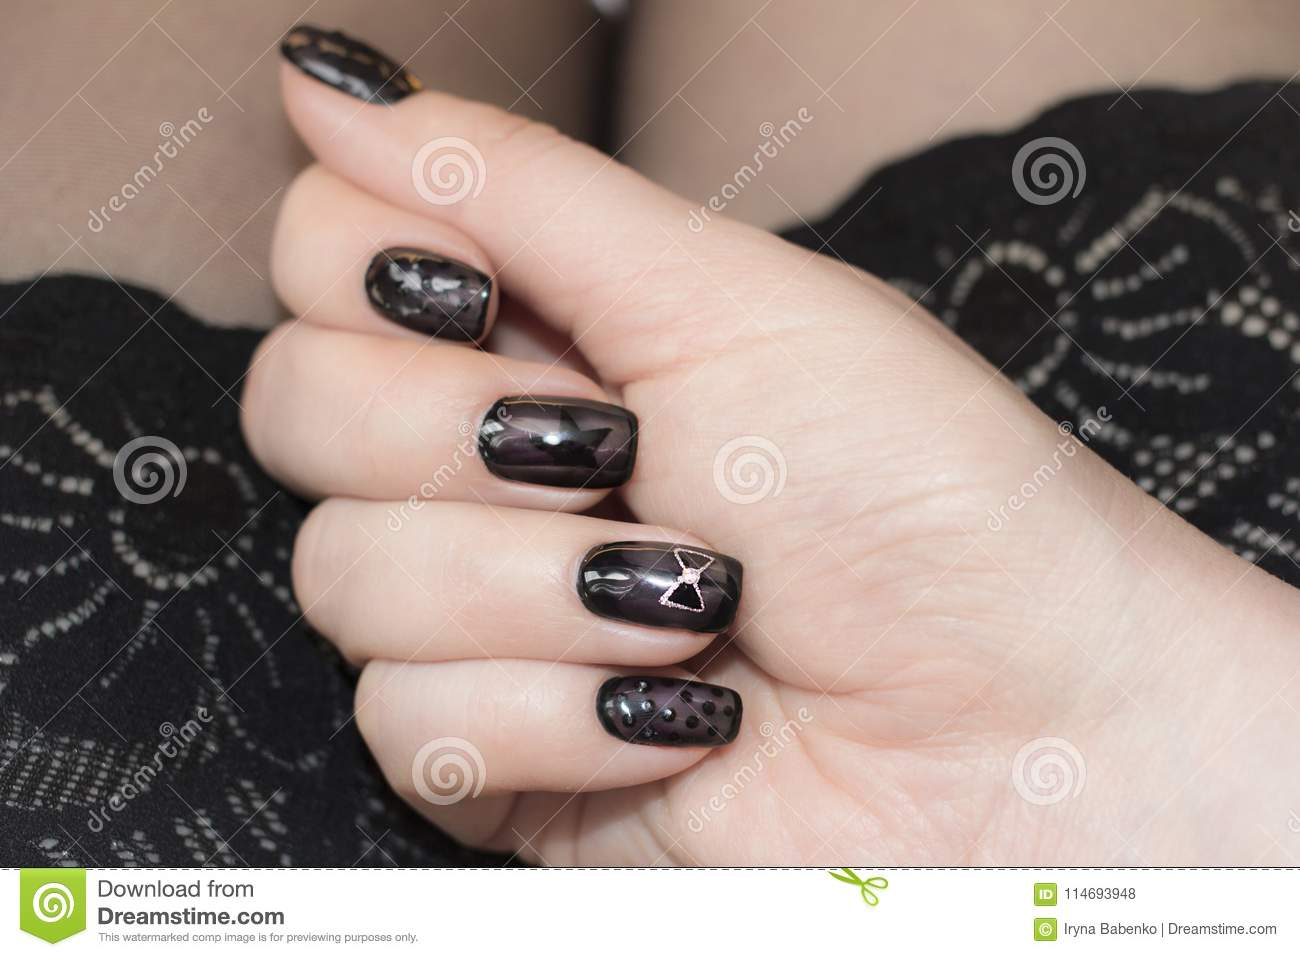 Designer Nails In Tone Stockings Stock Photo Image Of Care